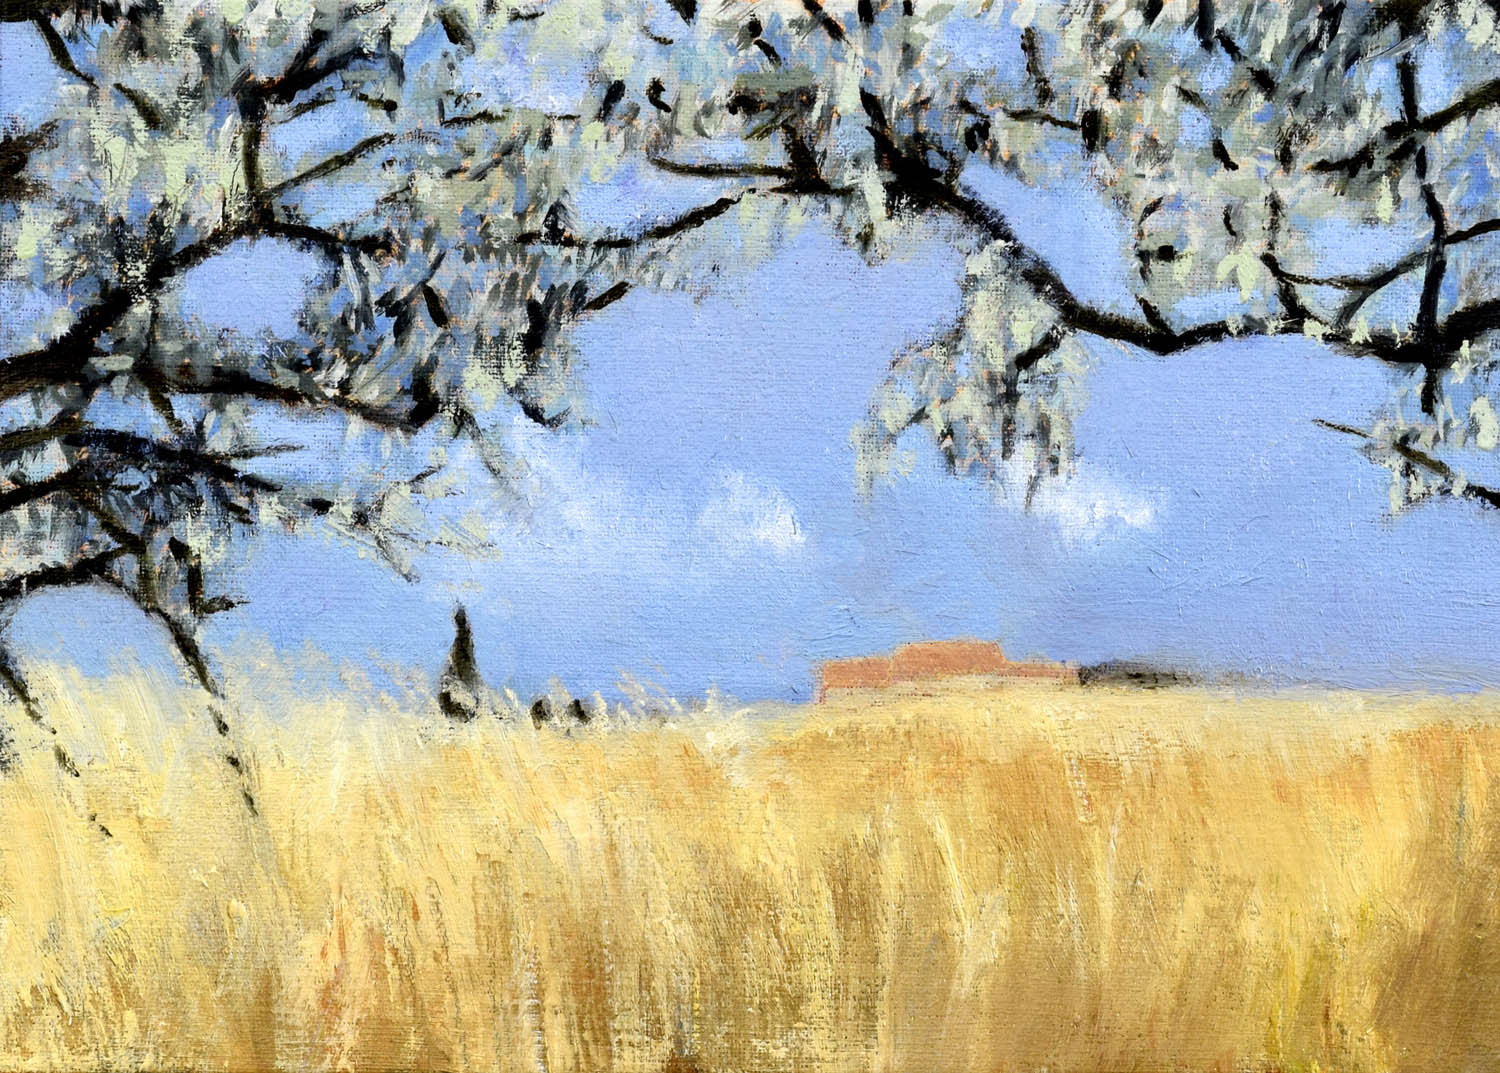 Wheatfield in the Summer Heat, John O'Grady | A landscape painting with gold wheat contrasting with the blue sky and the trees with silver leaves